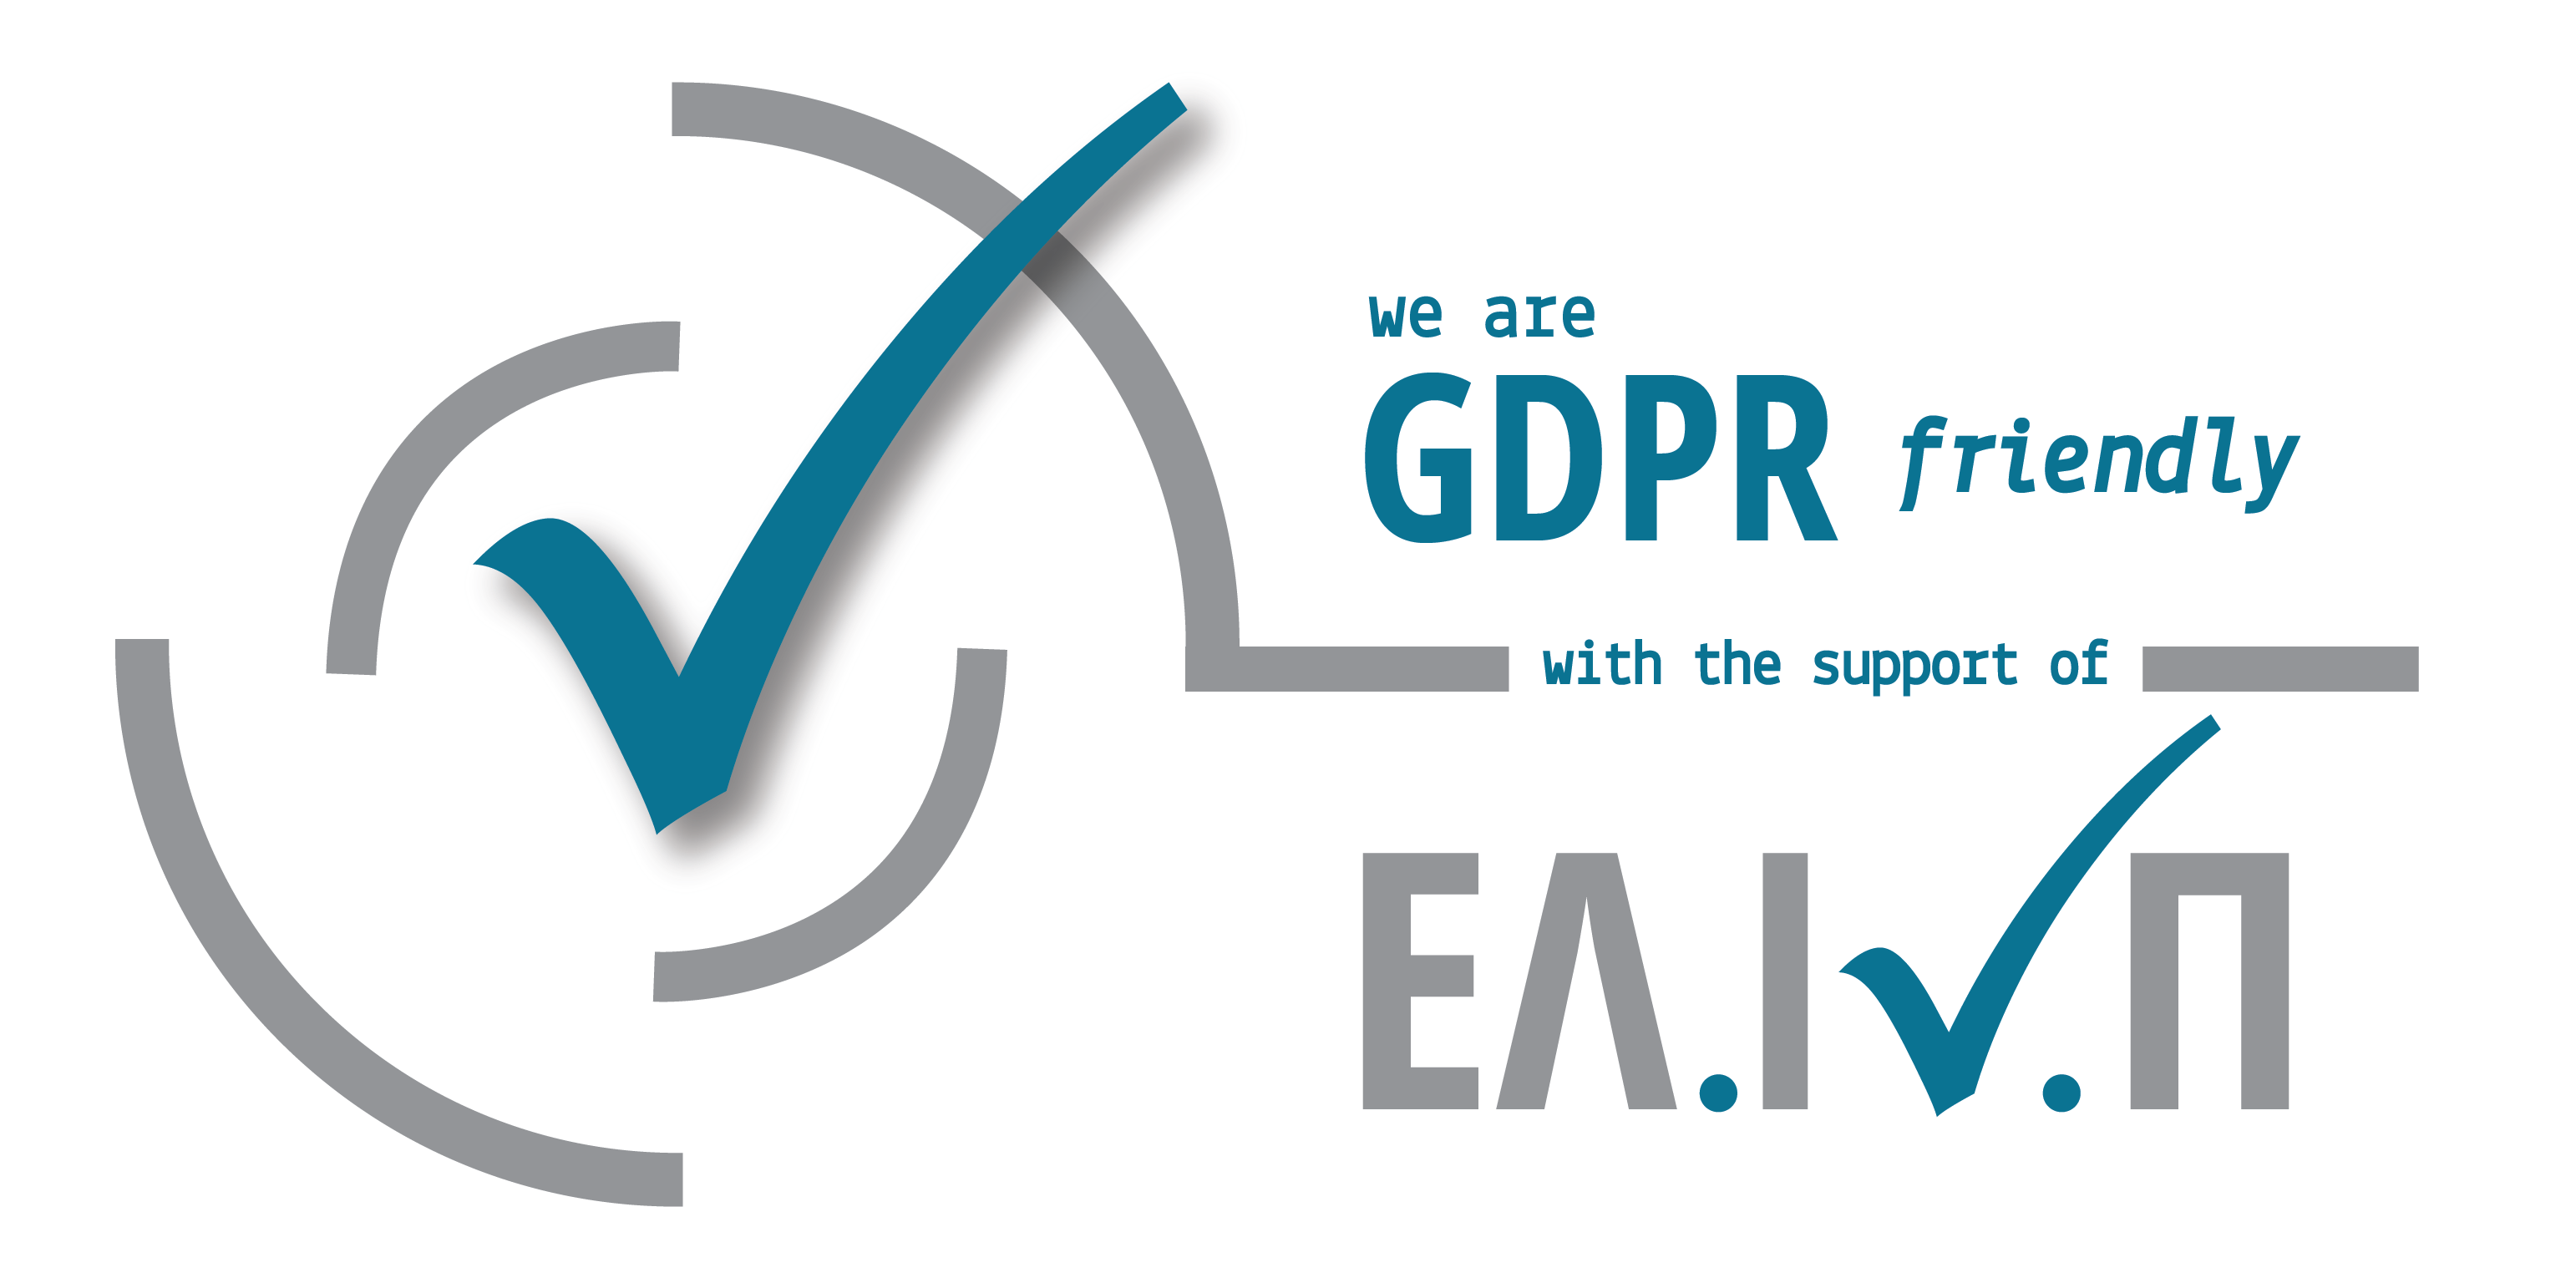 GDPR FRIENDLY LOGO